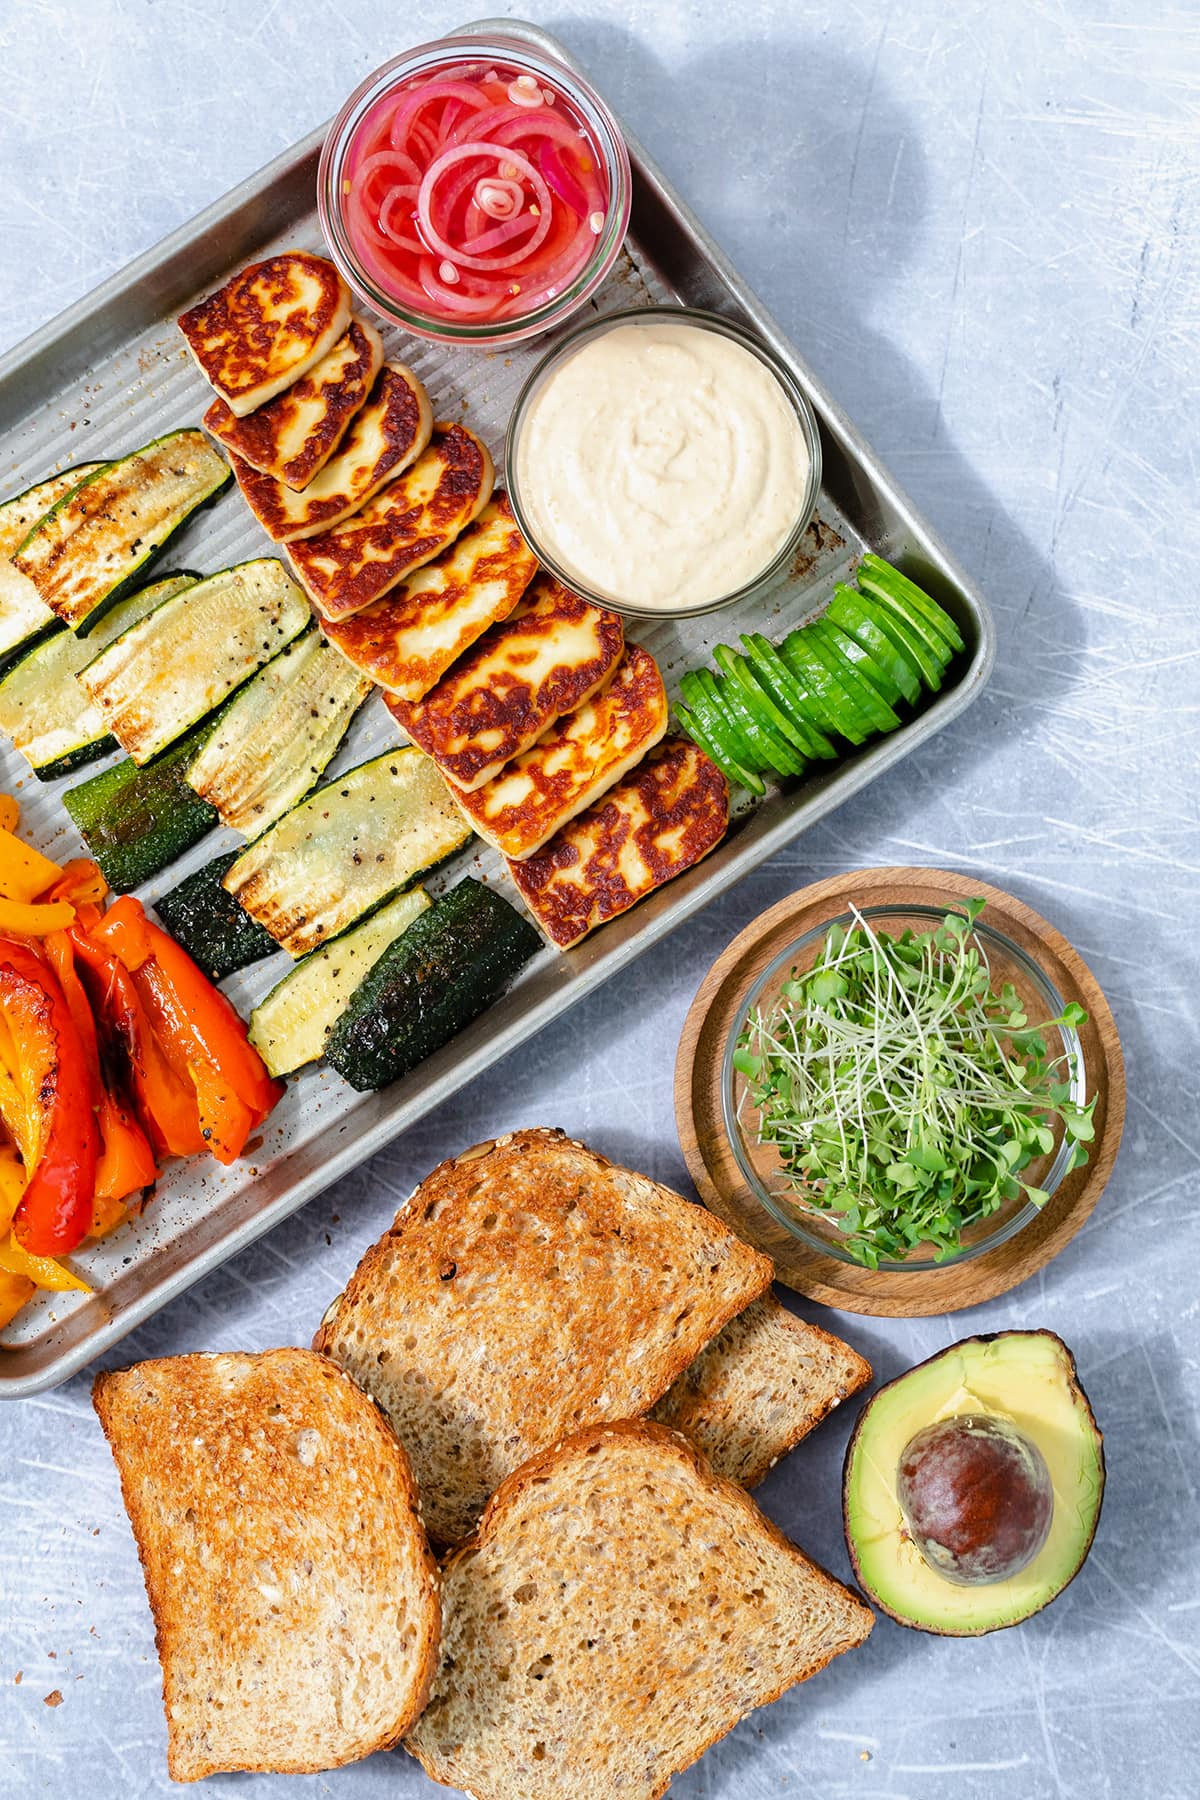 All the ingredients for halloumi sandwich all laid out on a baking sheet and a steel background.